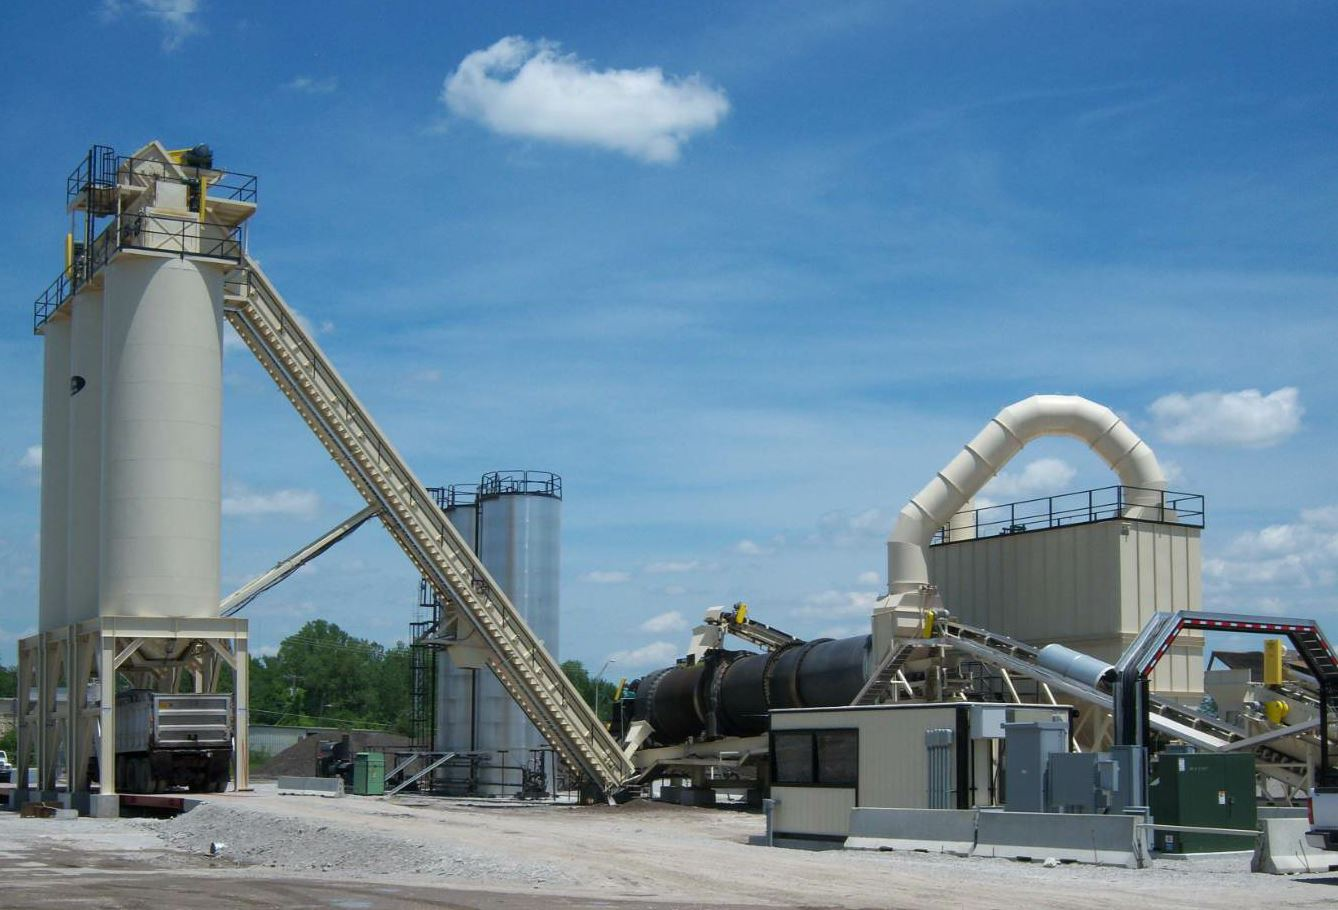 Tarmac International's asphalt plant components